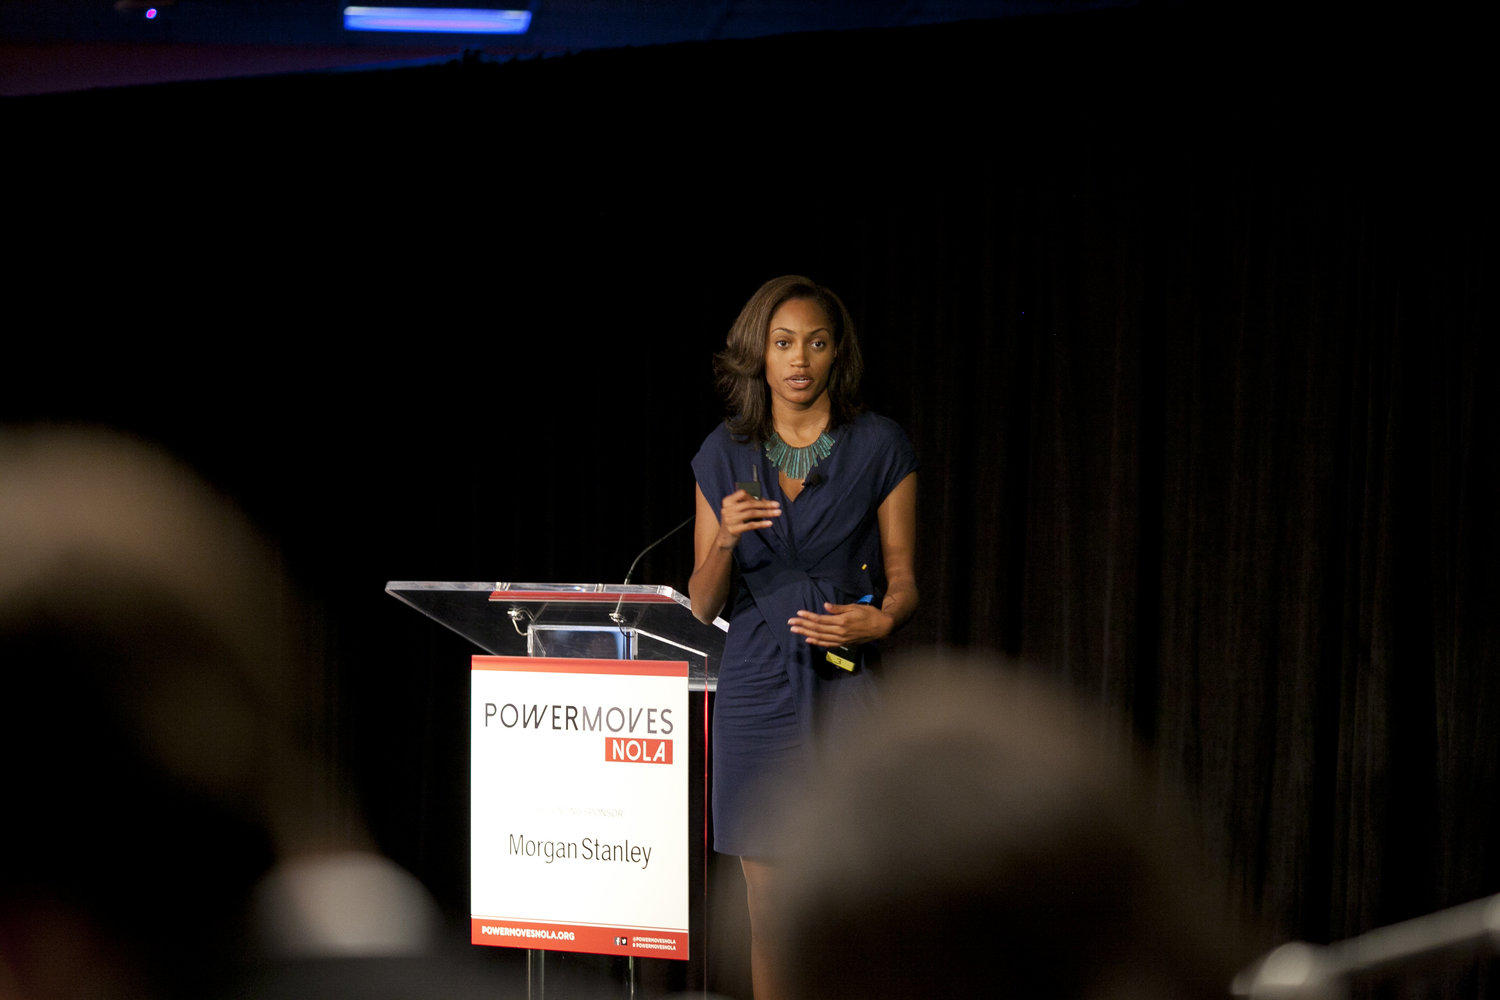 During the 2nd annual conference in New Orleans, PowerMoves showcased the most promising founders of color from across the nation.Jewel Burks, Co-Founder of Partpic, competes in the Morgan Stanley Series A Pitch.